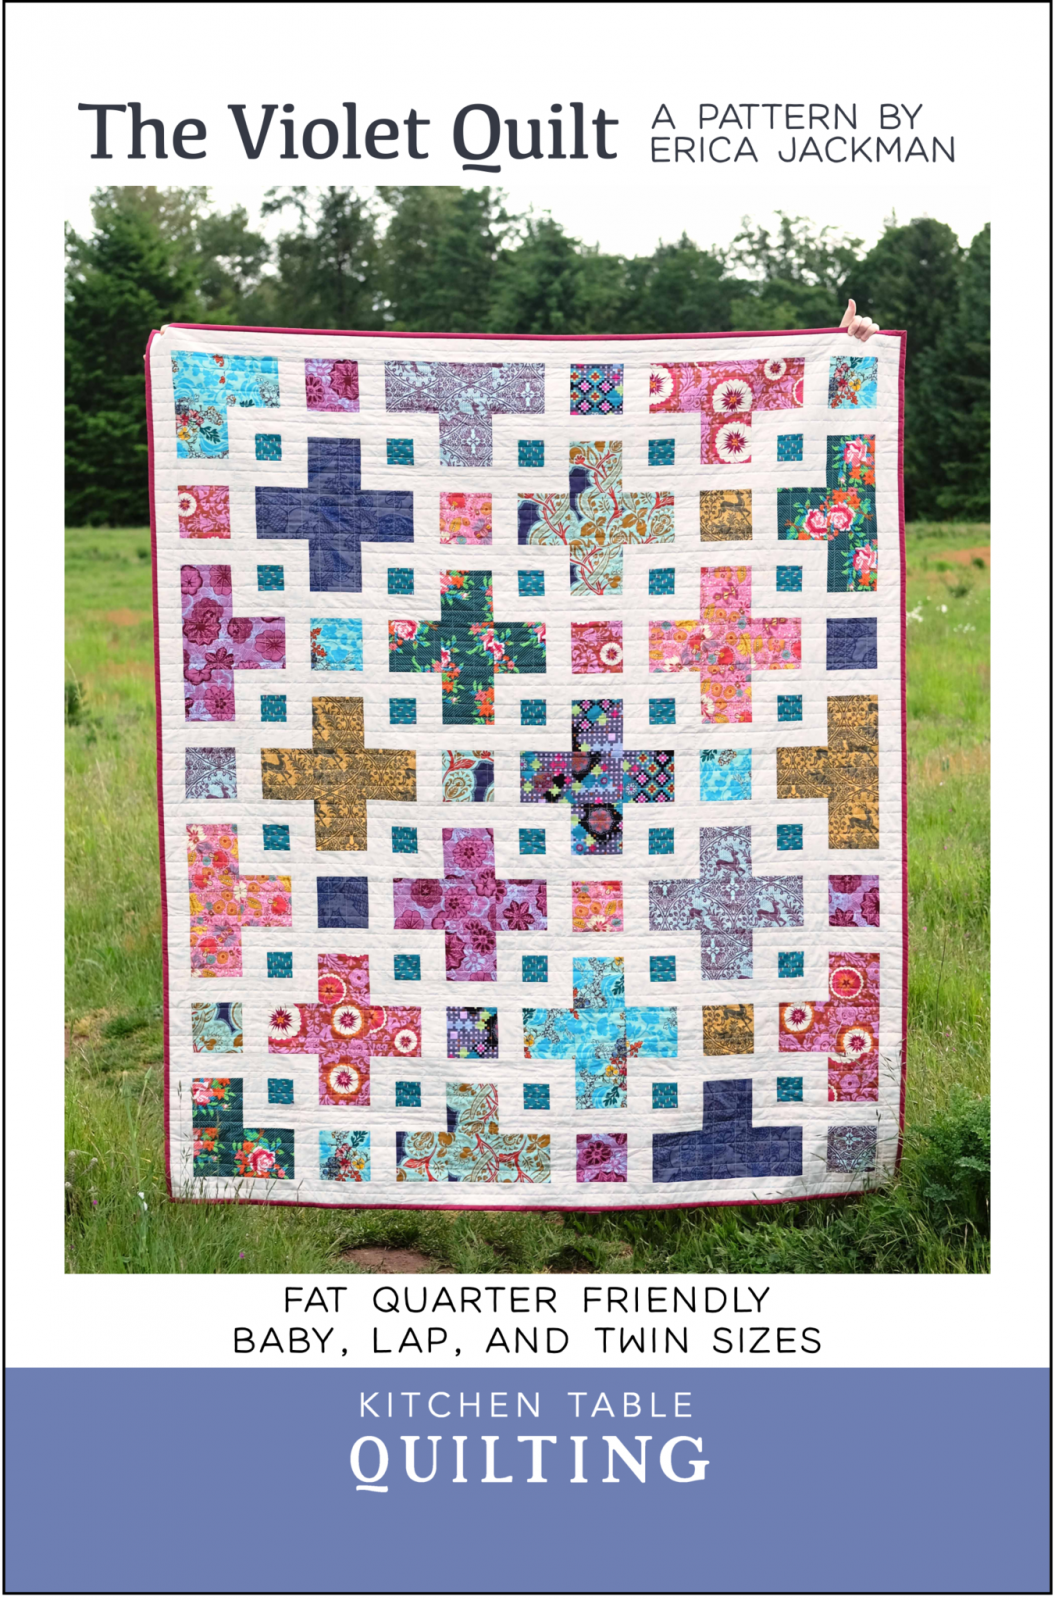 The Violet Quilt from Kitchen Table Quilting